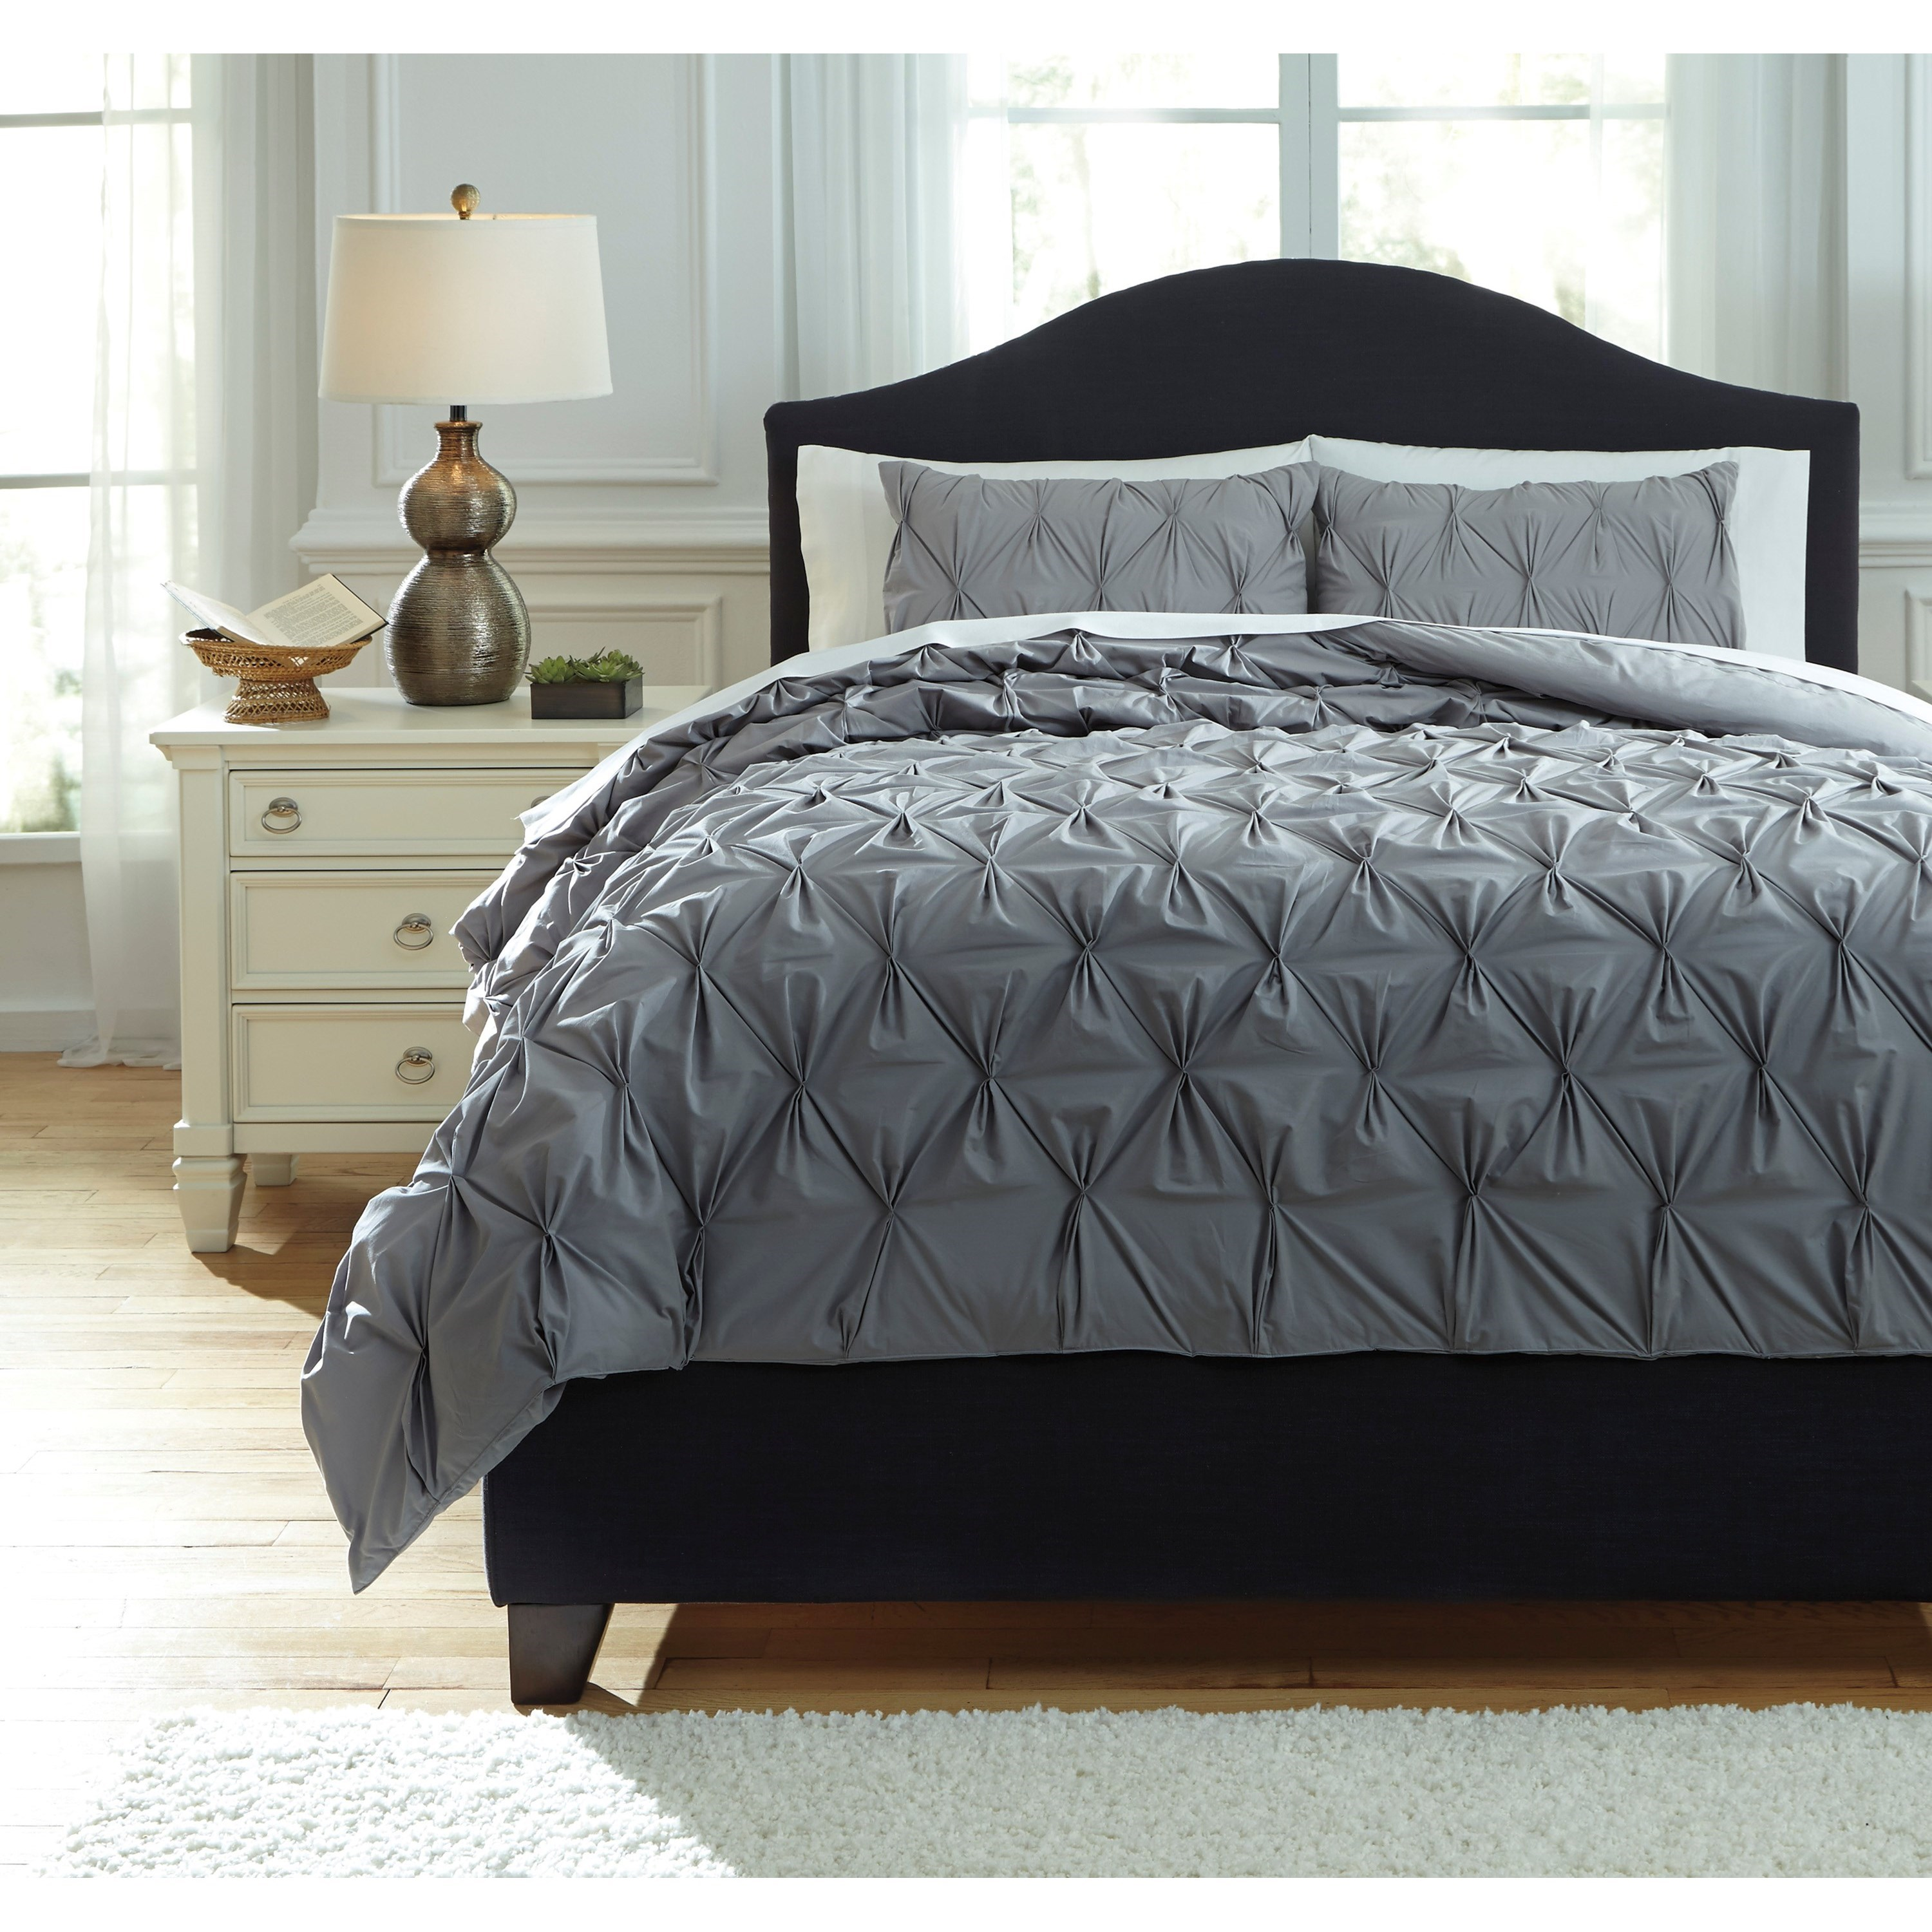 Bedding Sets King Rimy Gray Comforter Set by Signature Design by Ashley at Home Furnishings Direct